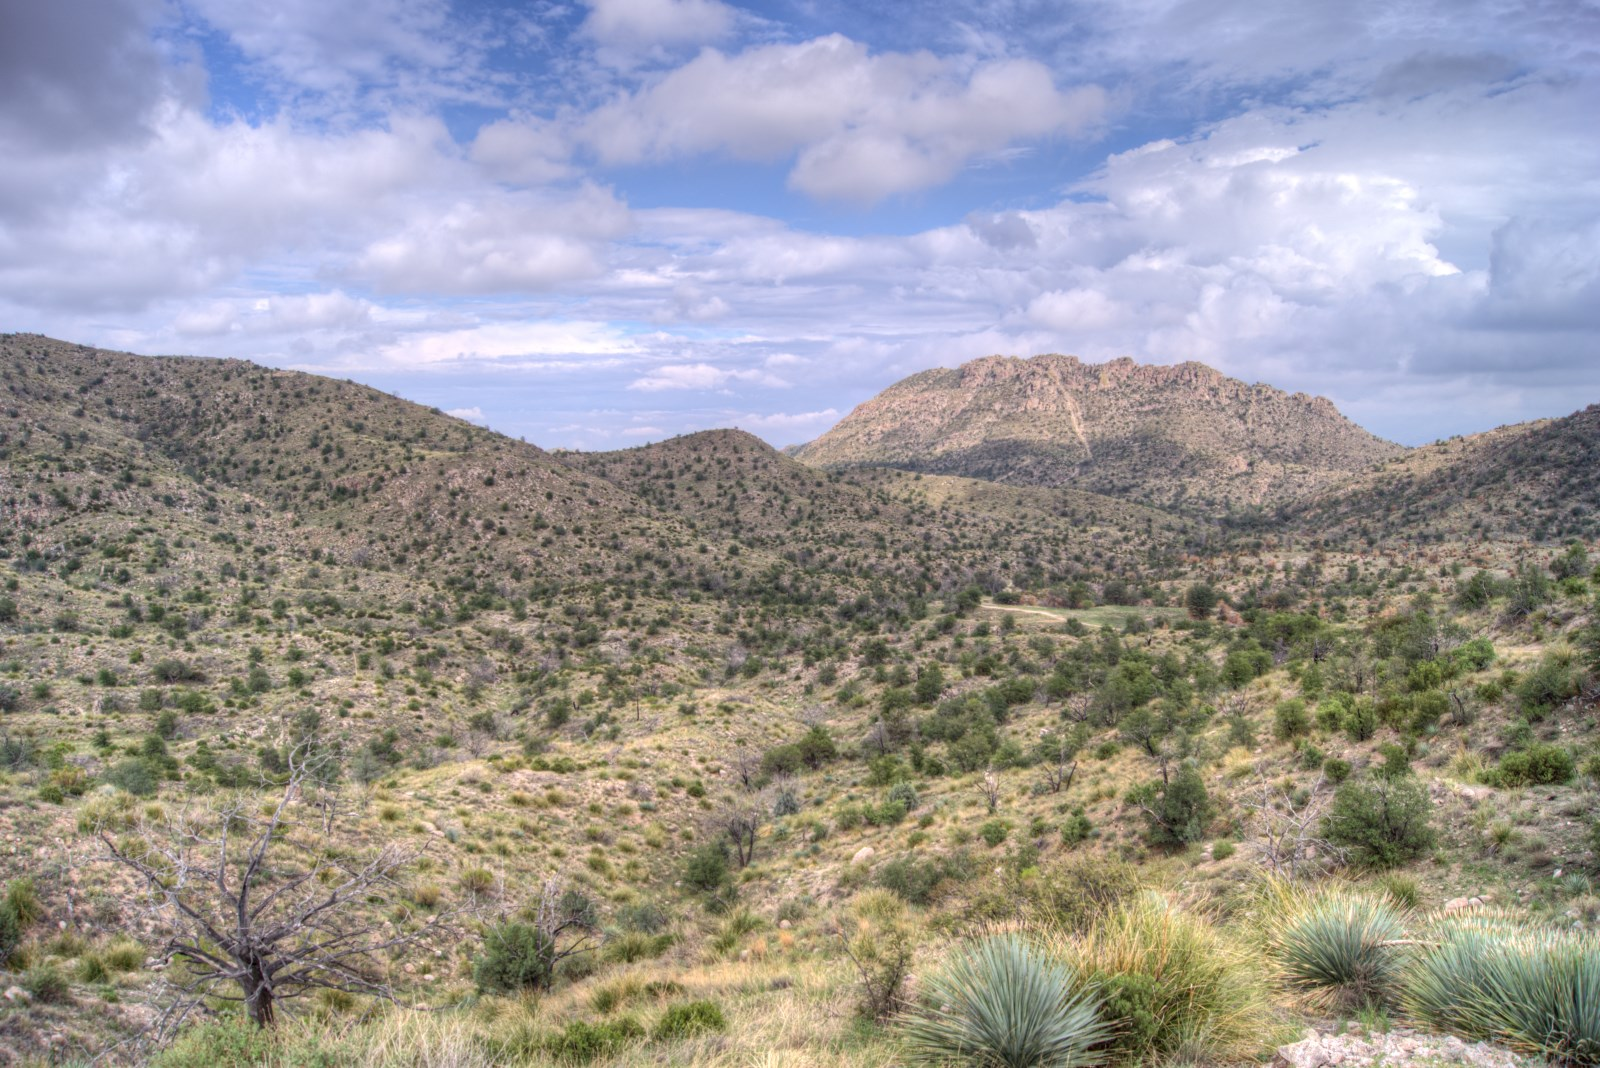 Looking towards Prison Camp from Shreve Saddle. August 2013.